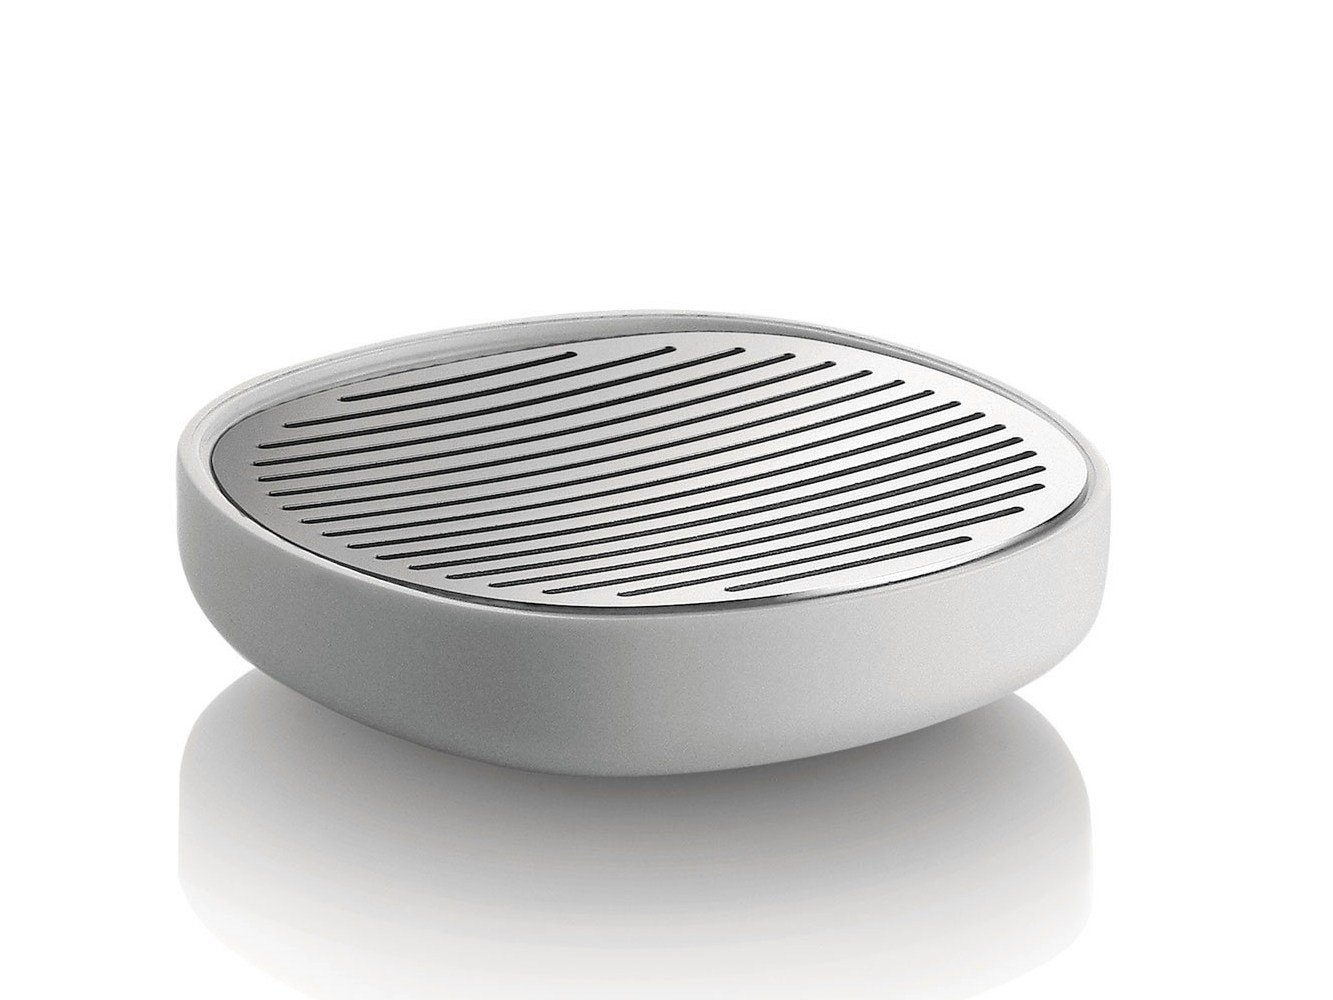 PMMA Soap dishes | Archiproducts